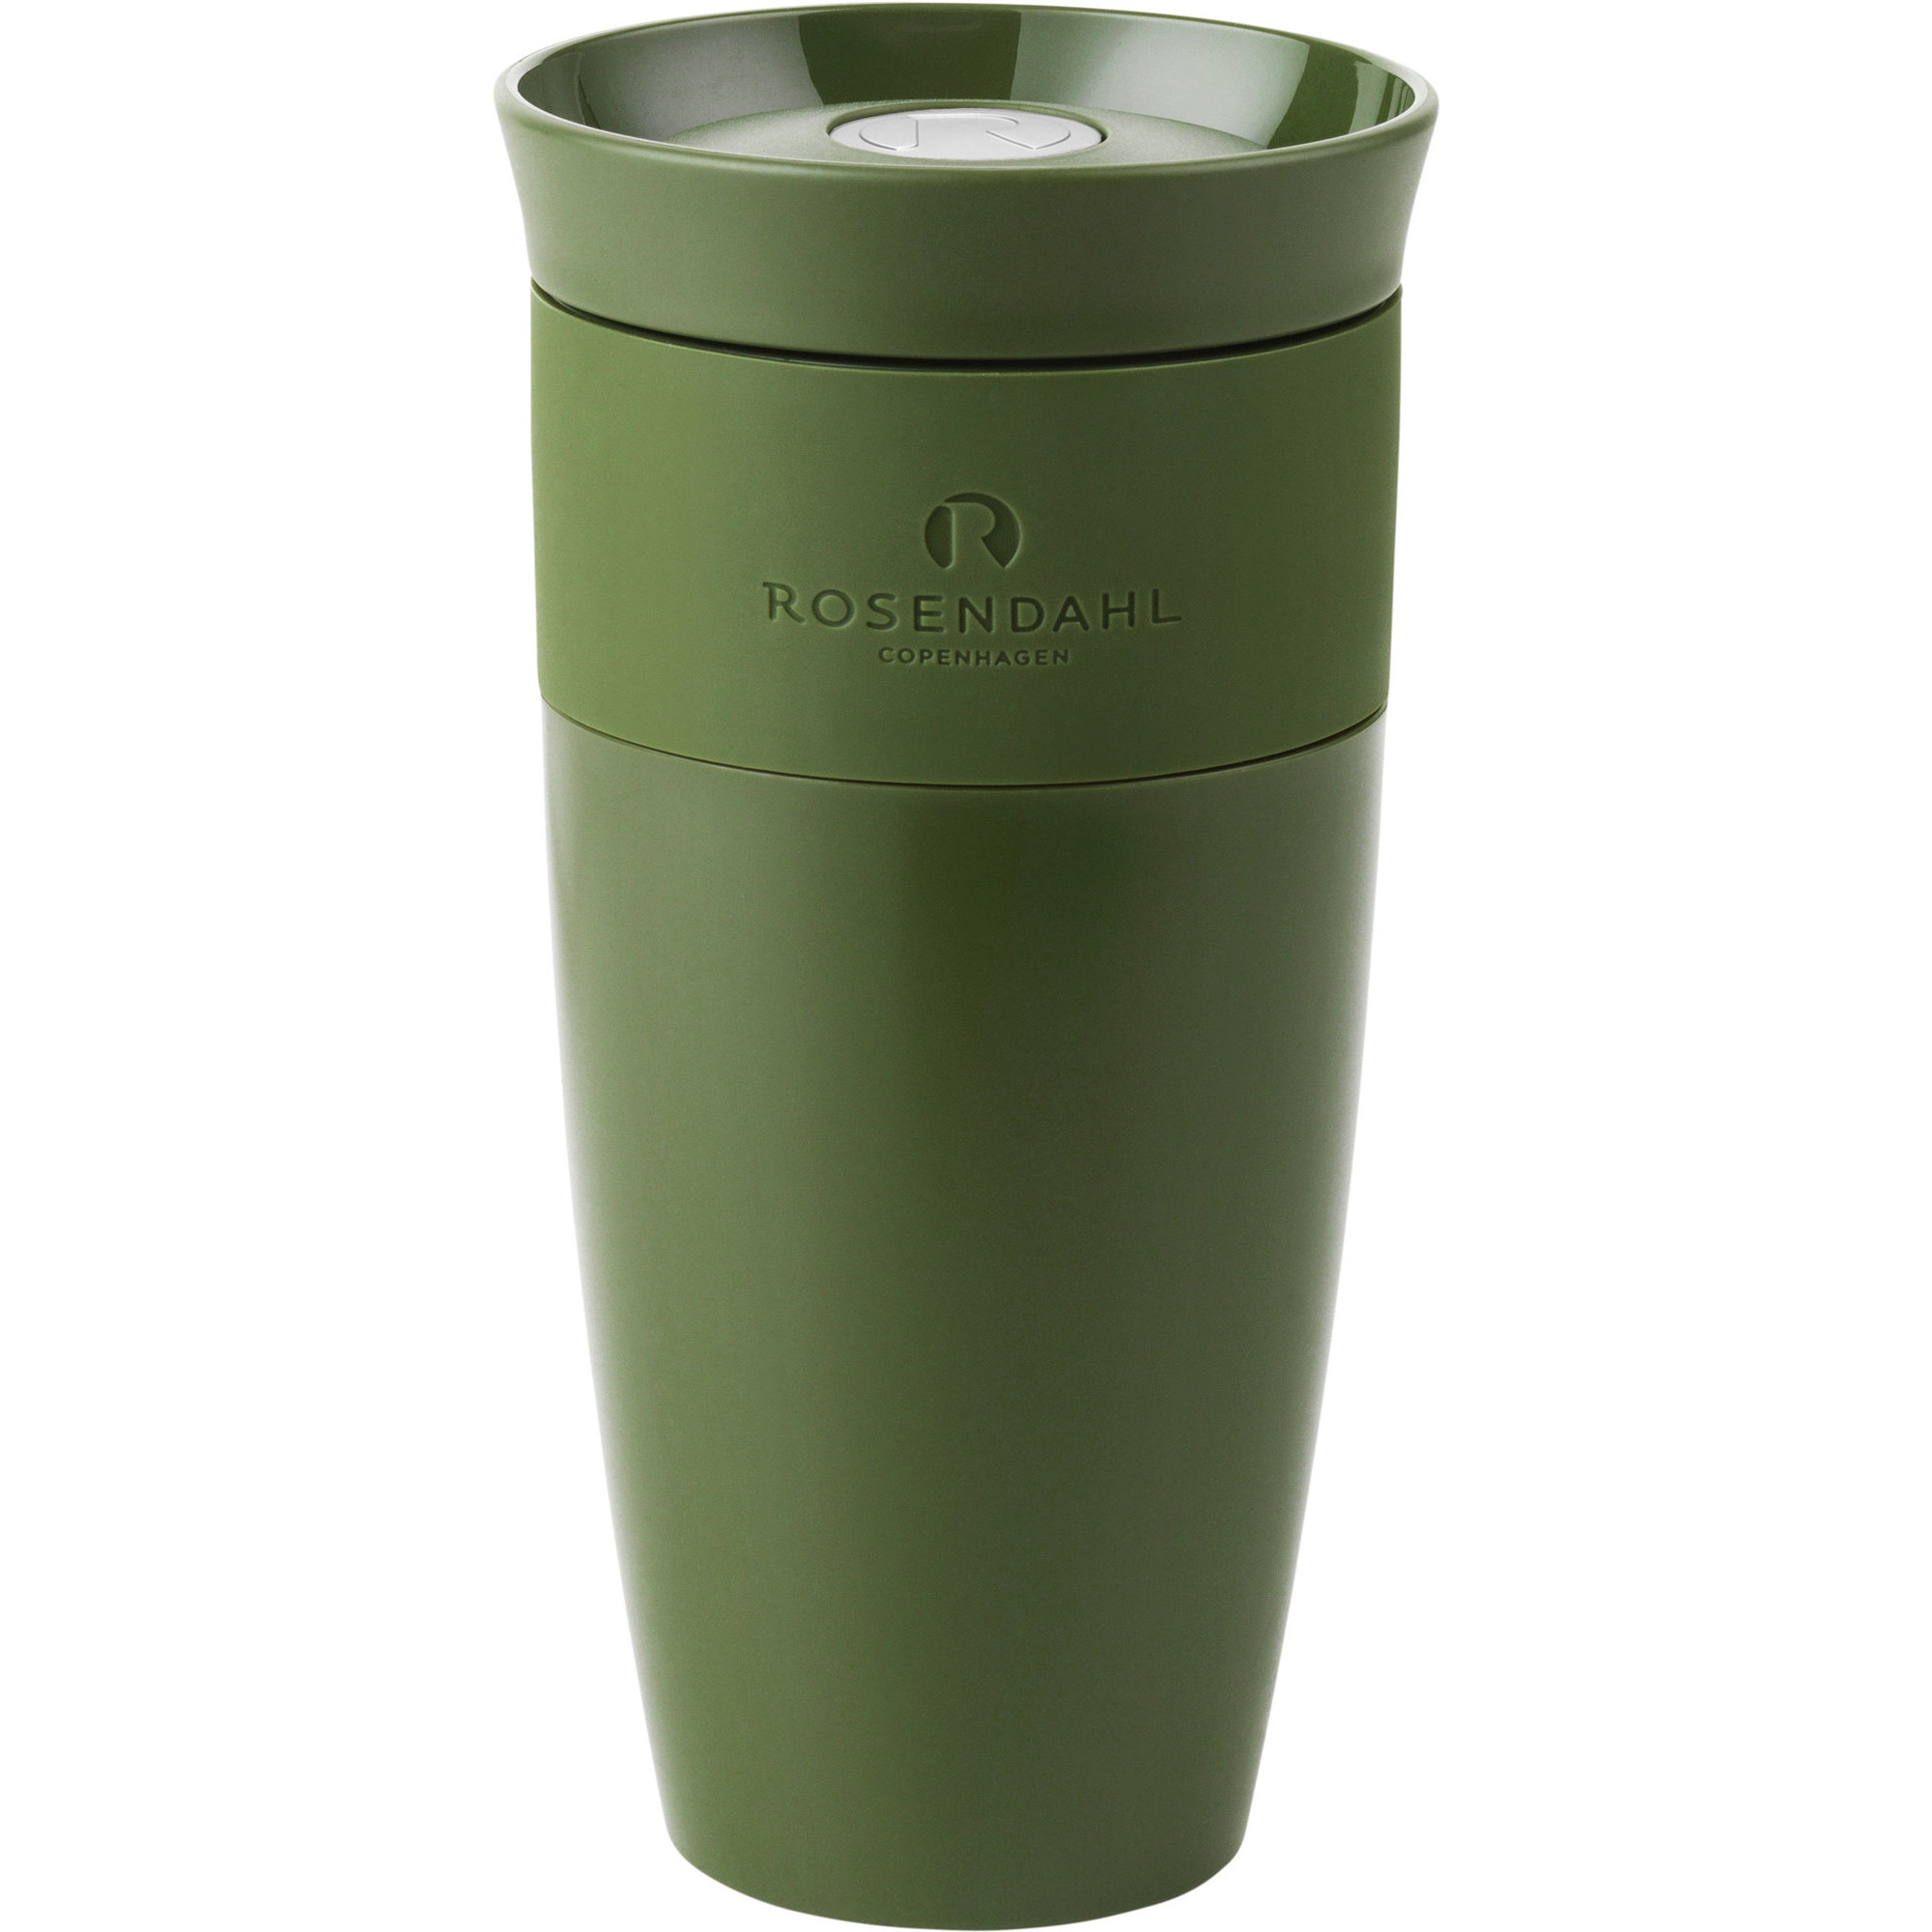 Rosendahl Grand Cru To Go Mugg 28 cl olivgrön